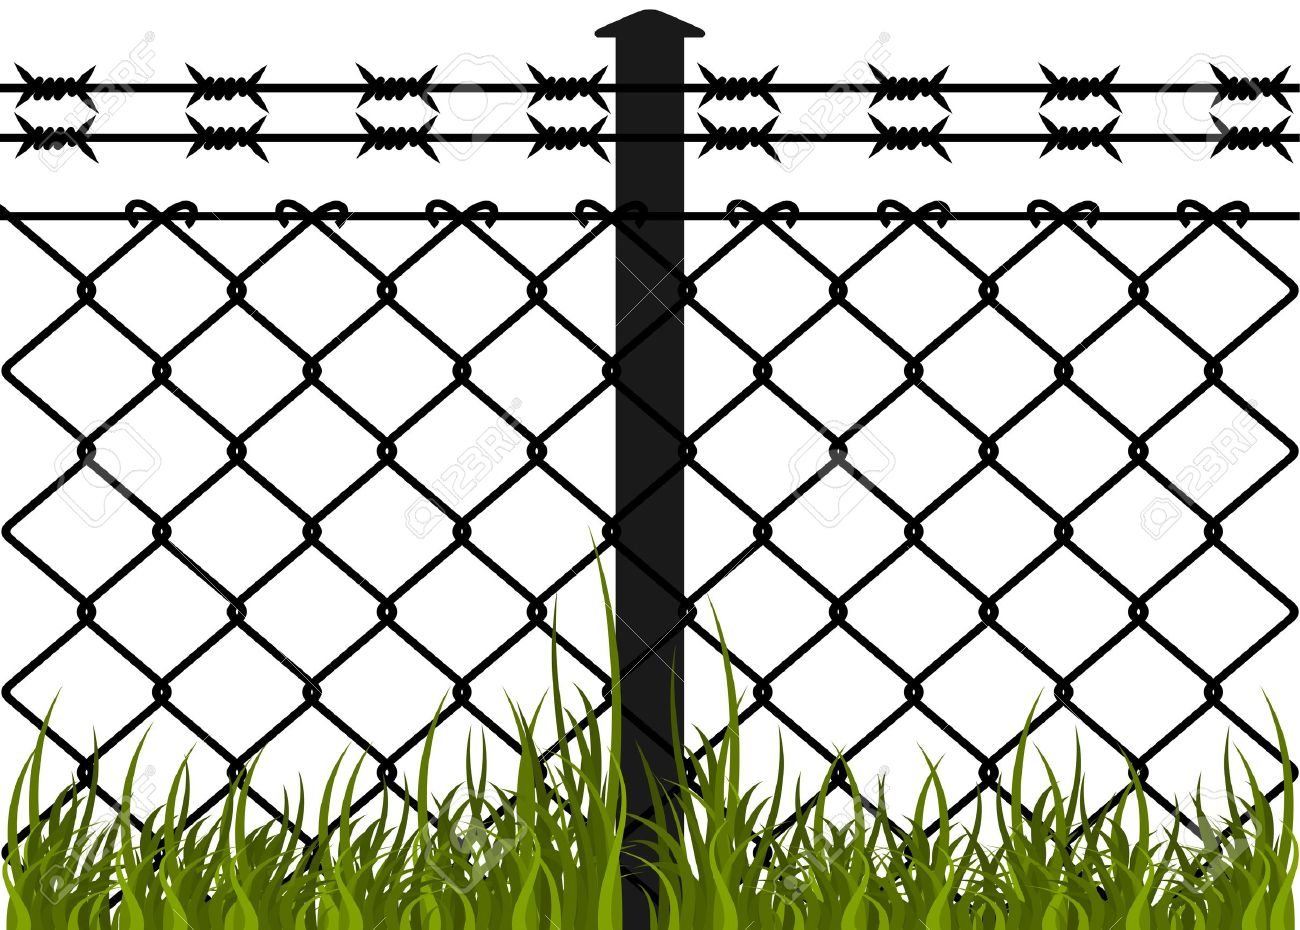 Wire Fence With Barbed Wires Vector Illustration Royalty Free ...